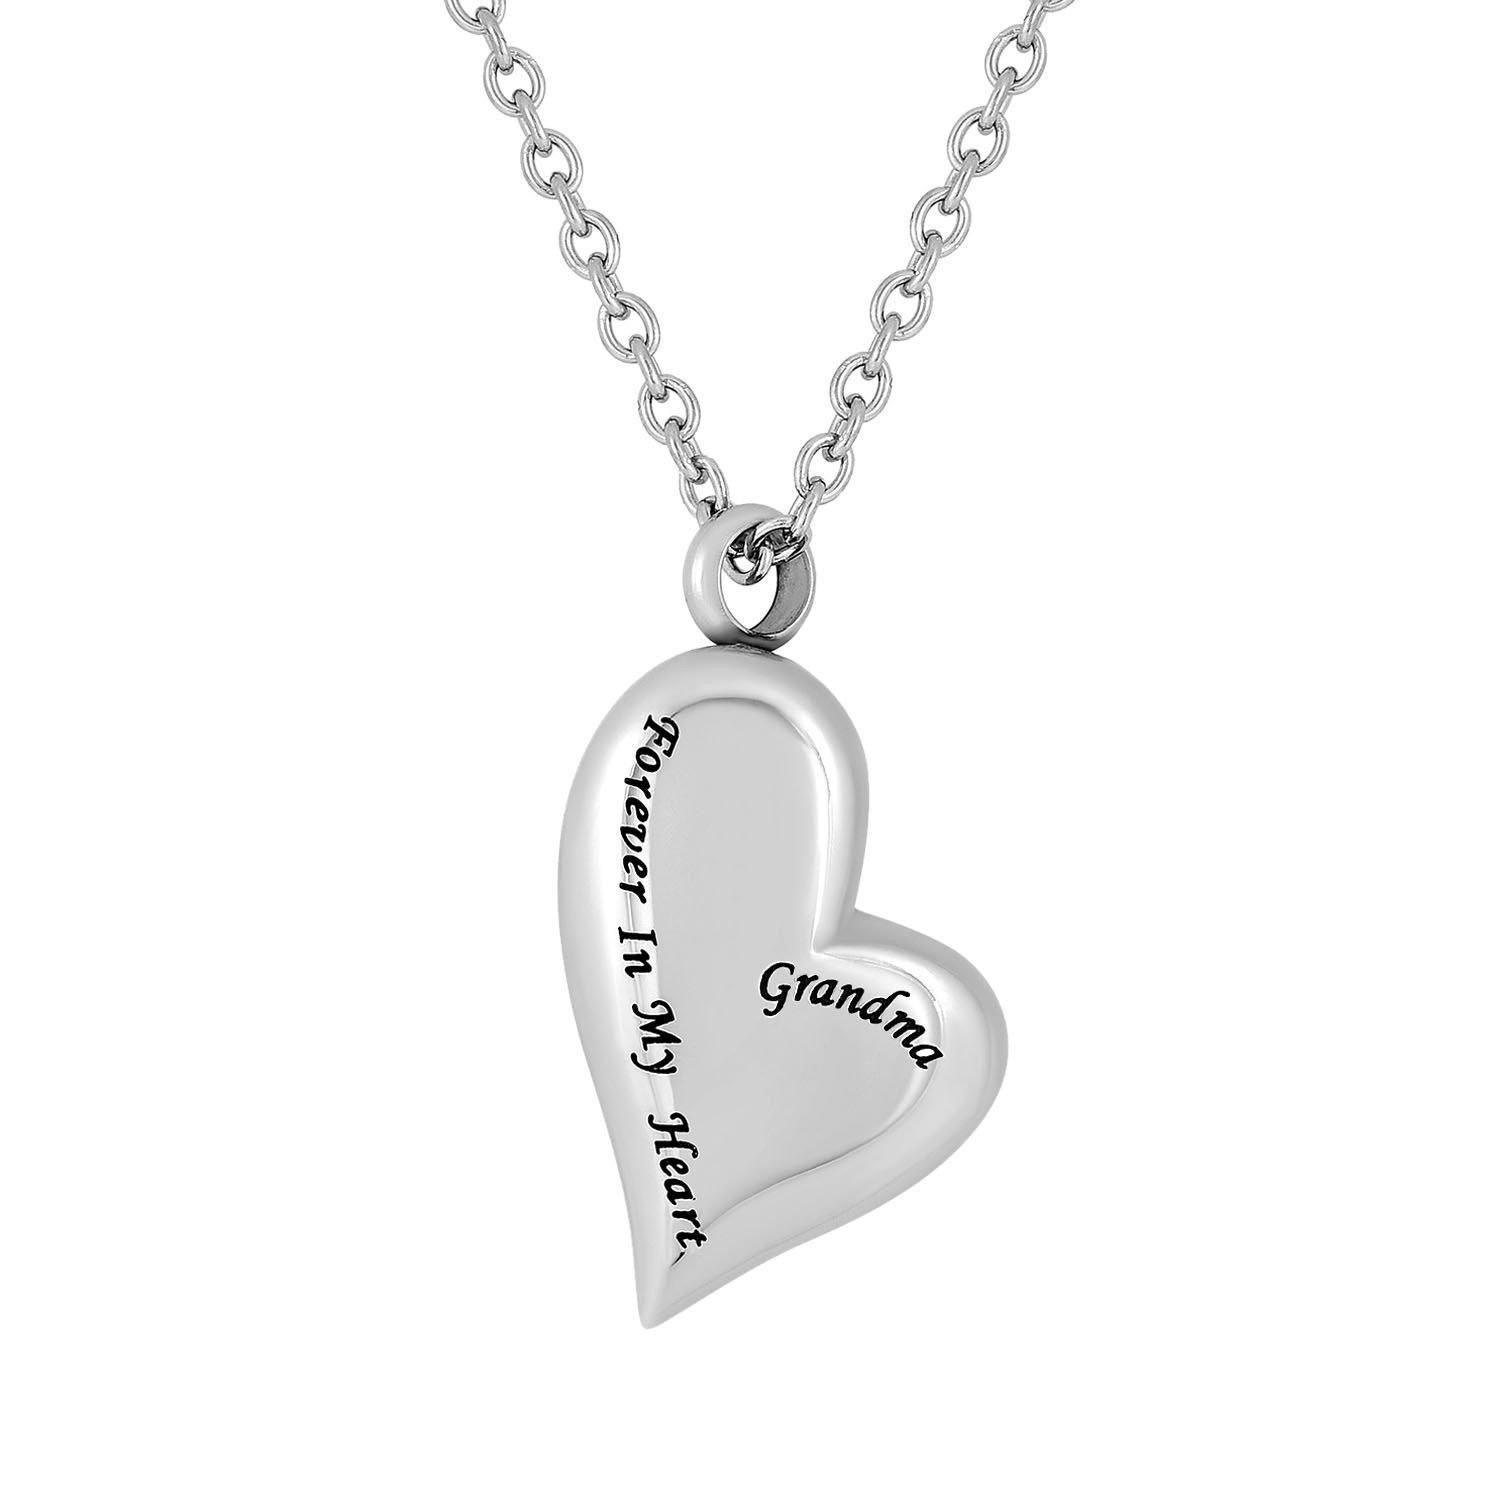 Cremation Jewelry Necklace for Ashes - Grandma Forever In My Heart